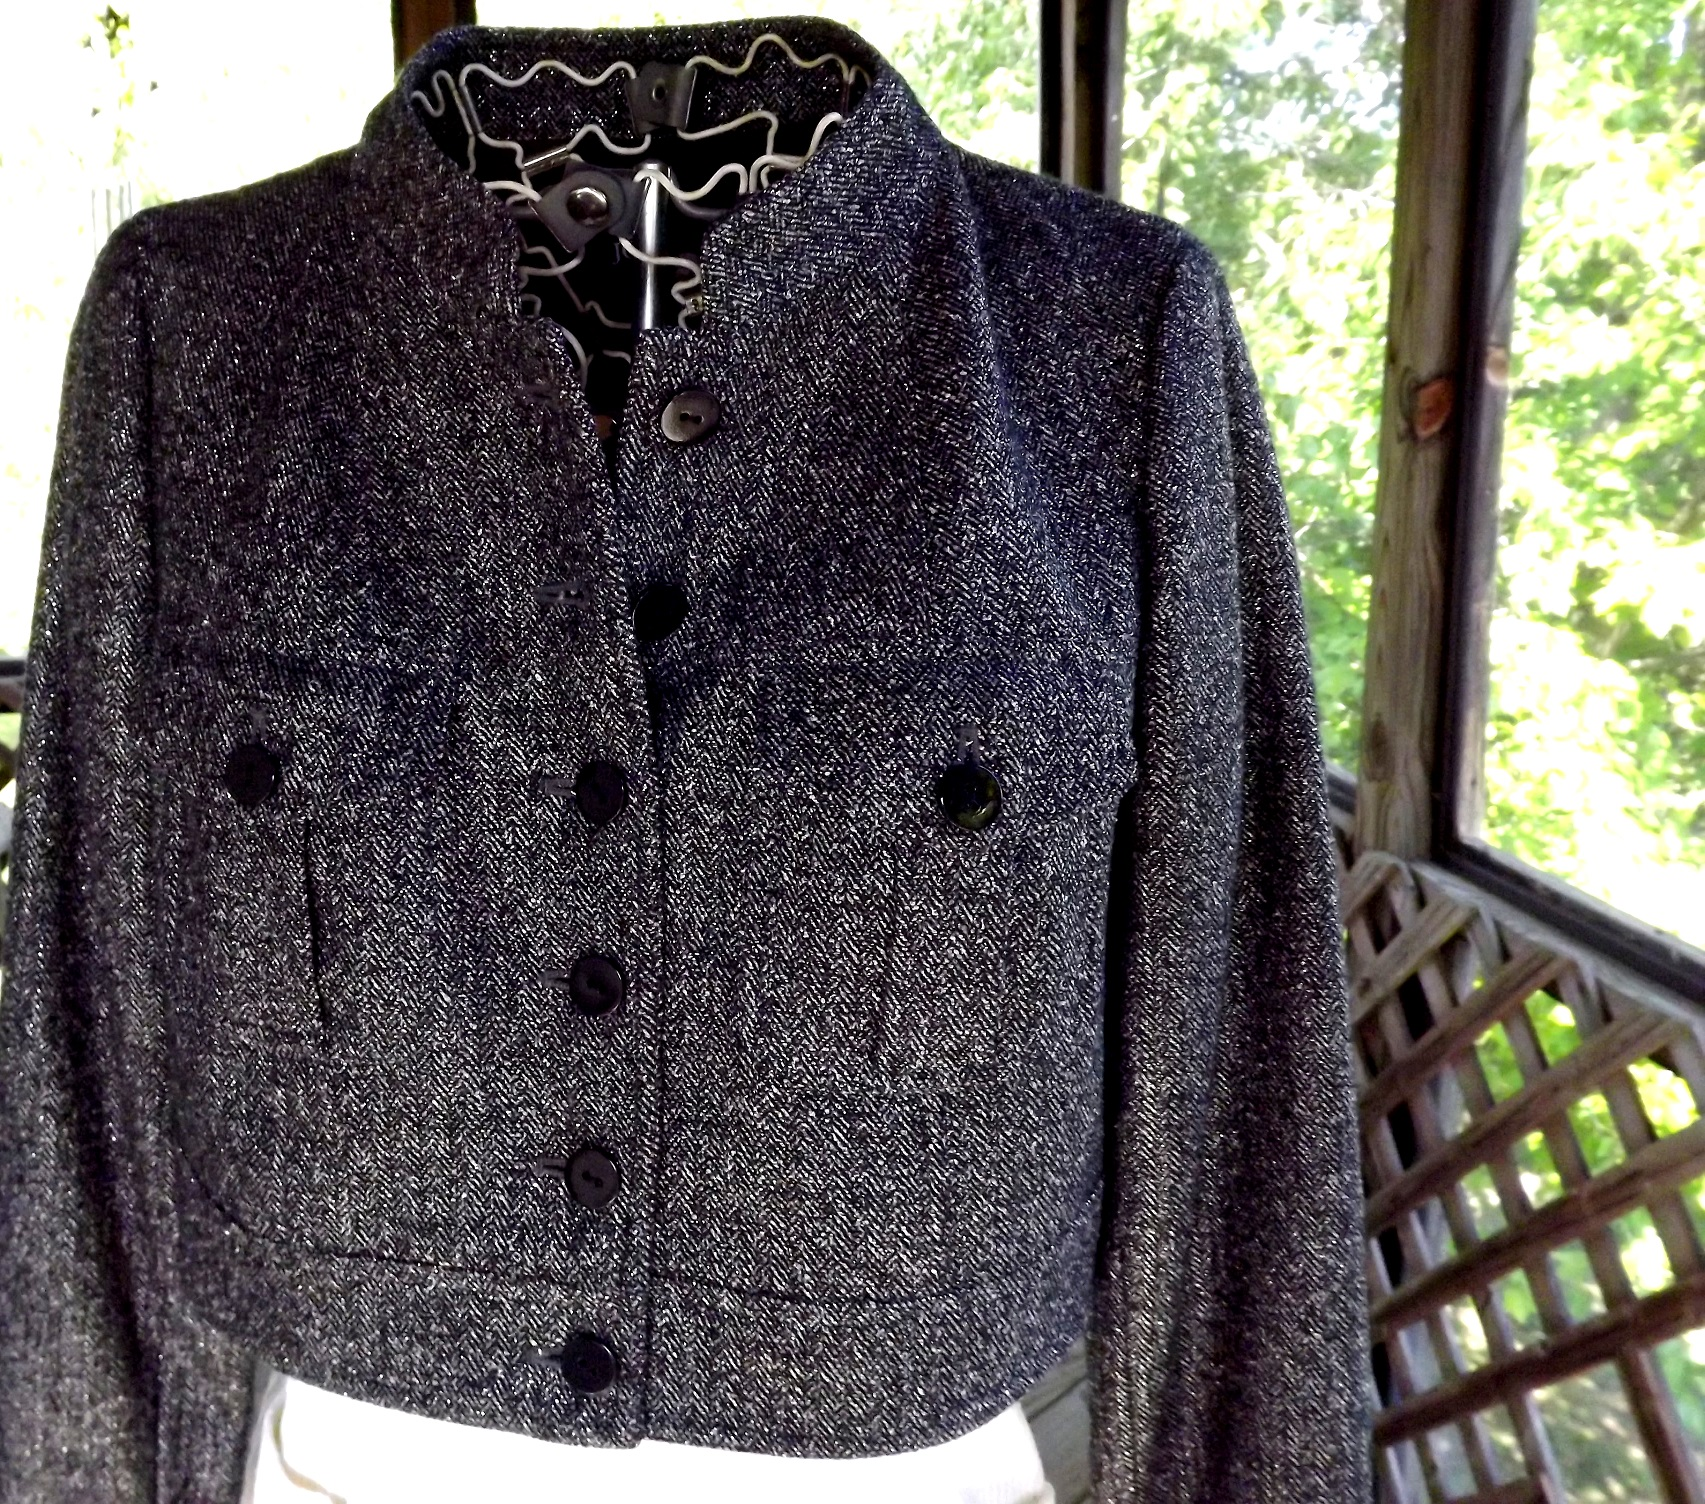 Bolero jacket short tweed coat designer black silver for Designer bolero